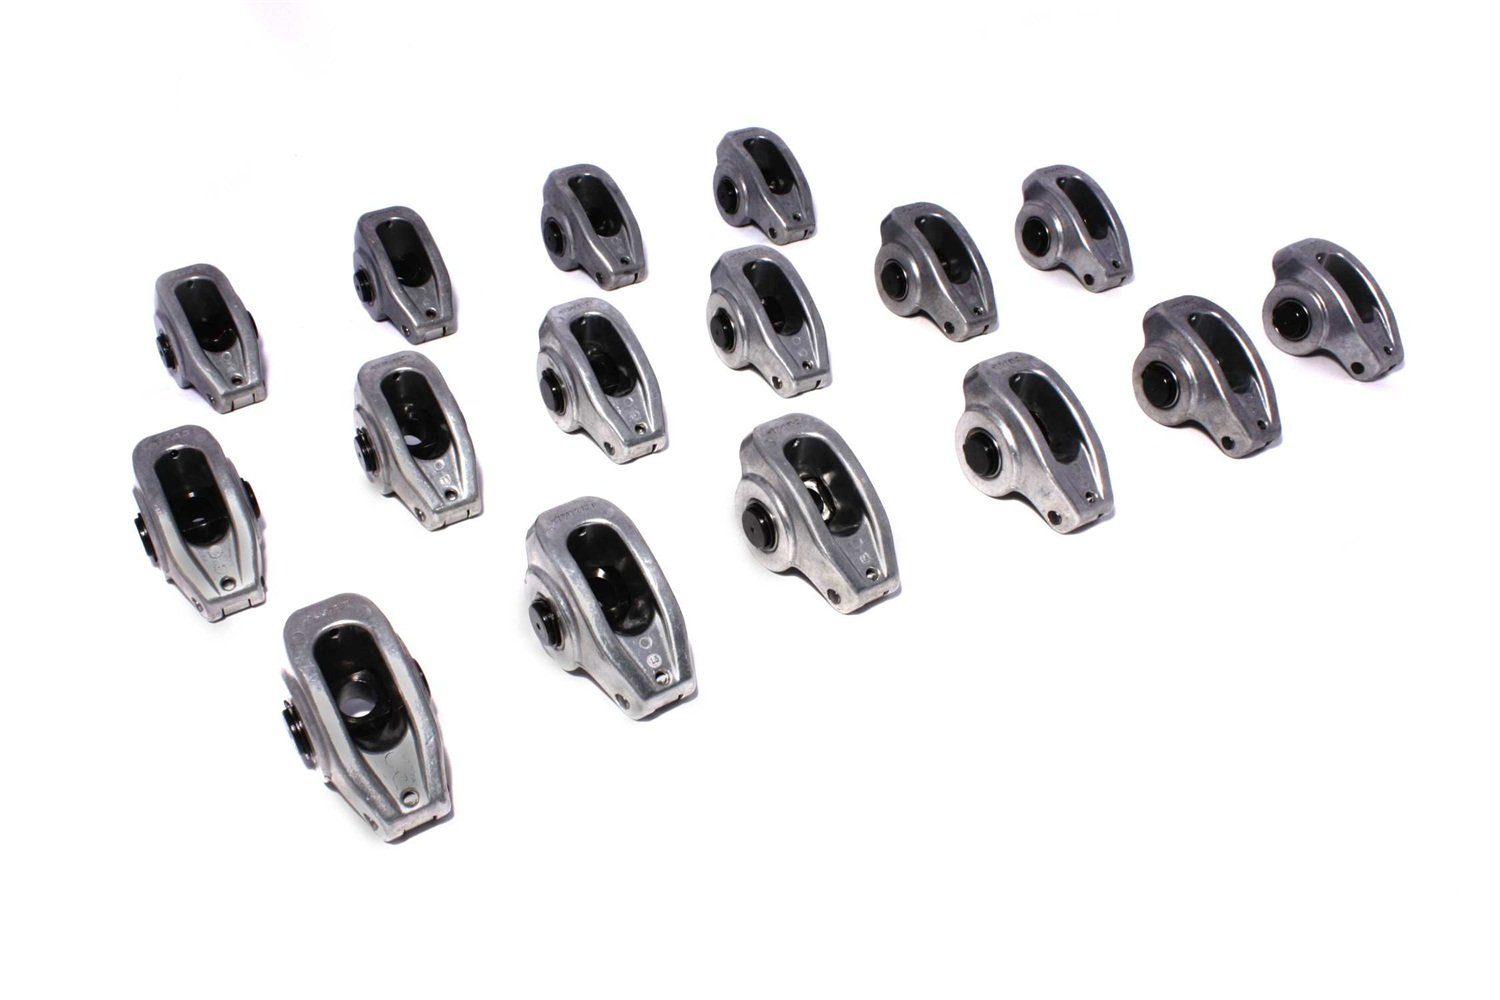 COMP Cams 17004-16 High Energy 7/16' Stud Diameter Die Cast Aluminum Roller Rocker Arm for Small Block Chevrolet